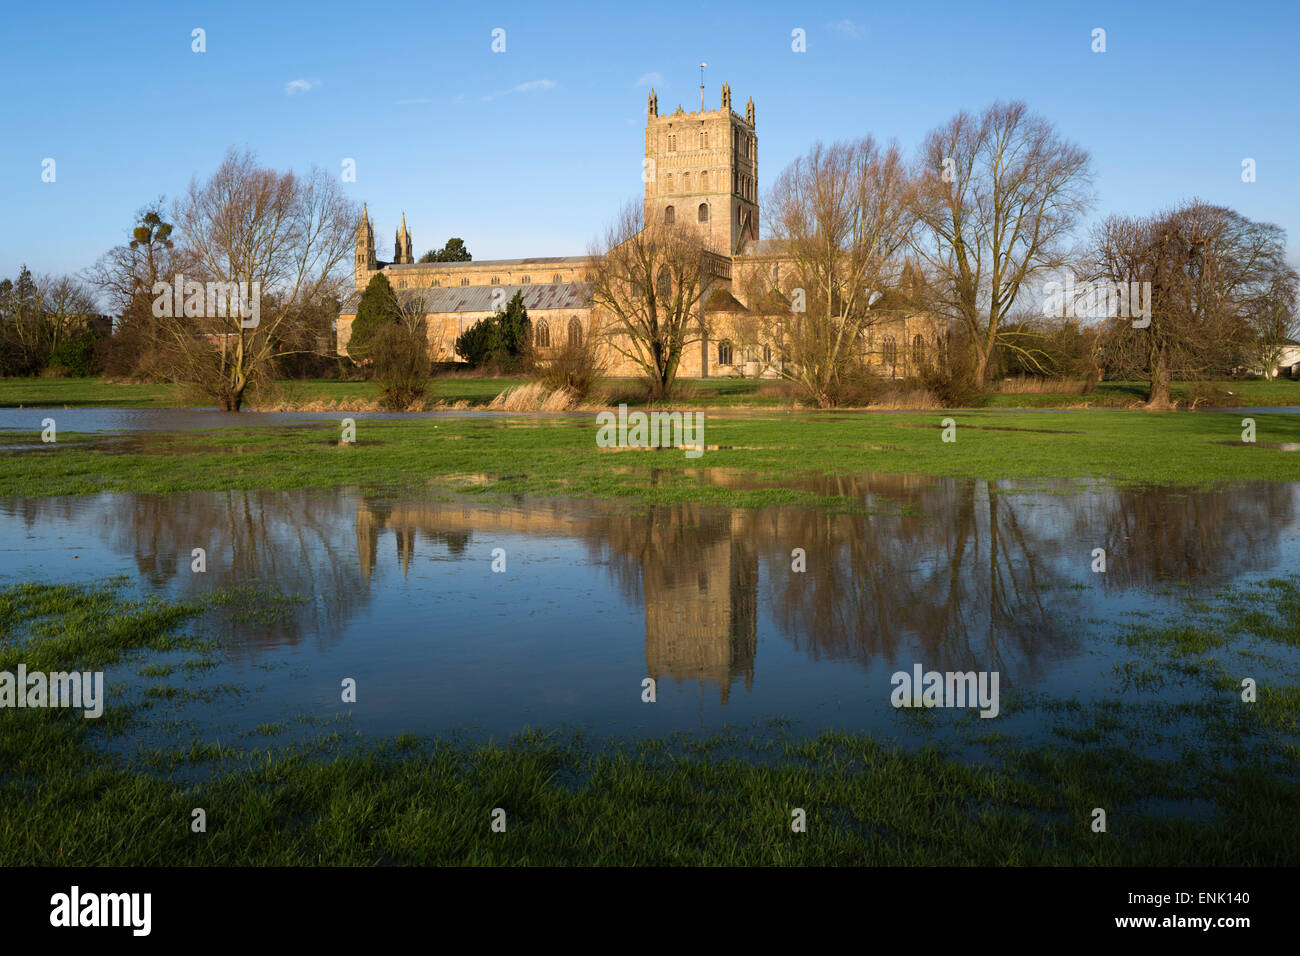 Tewkesbury Abbey reflected in flooded meadow, Tewkesbury, Gloucestershire, England, United Kingdom, Europe - Stock Image